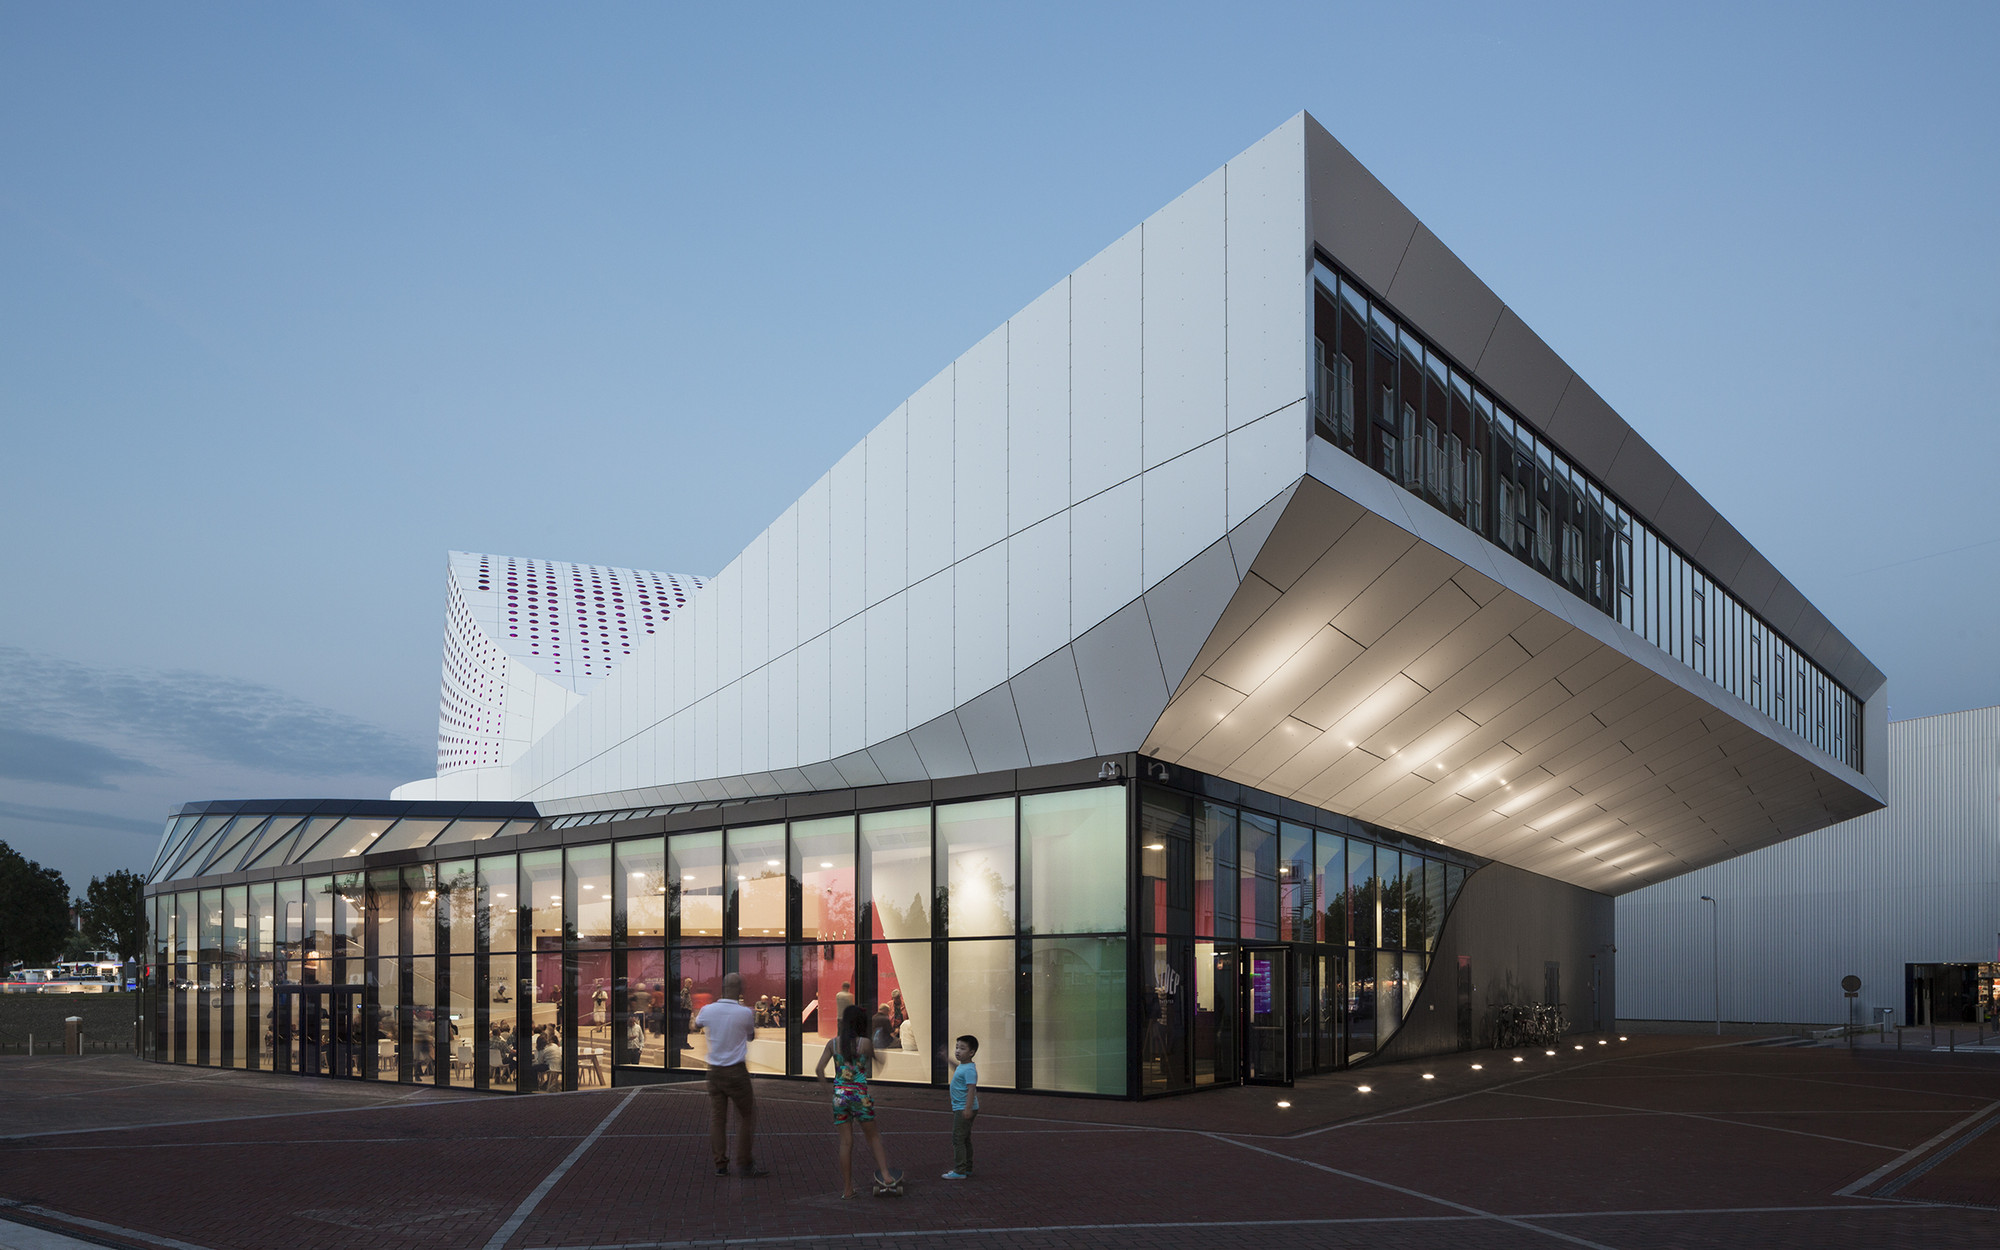 Theatre De Stoep Unstudio - 7